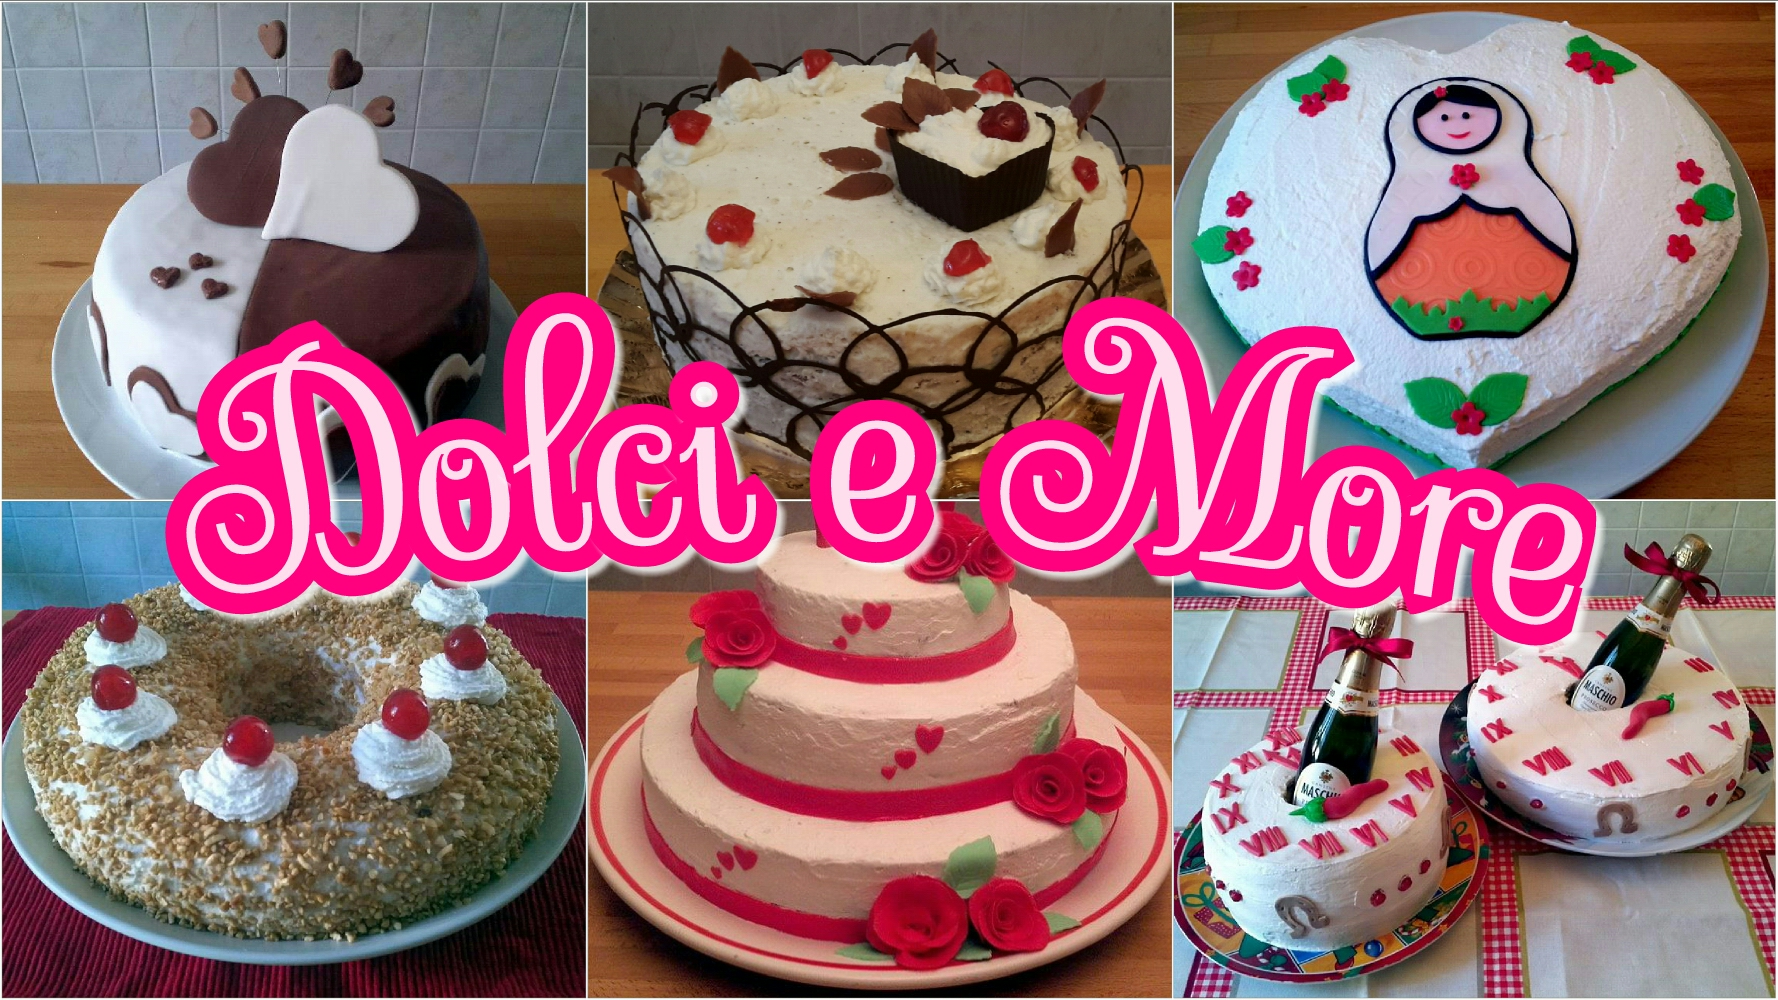 Dolci&More